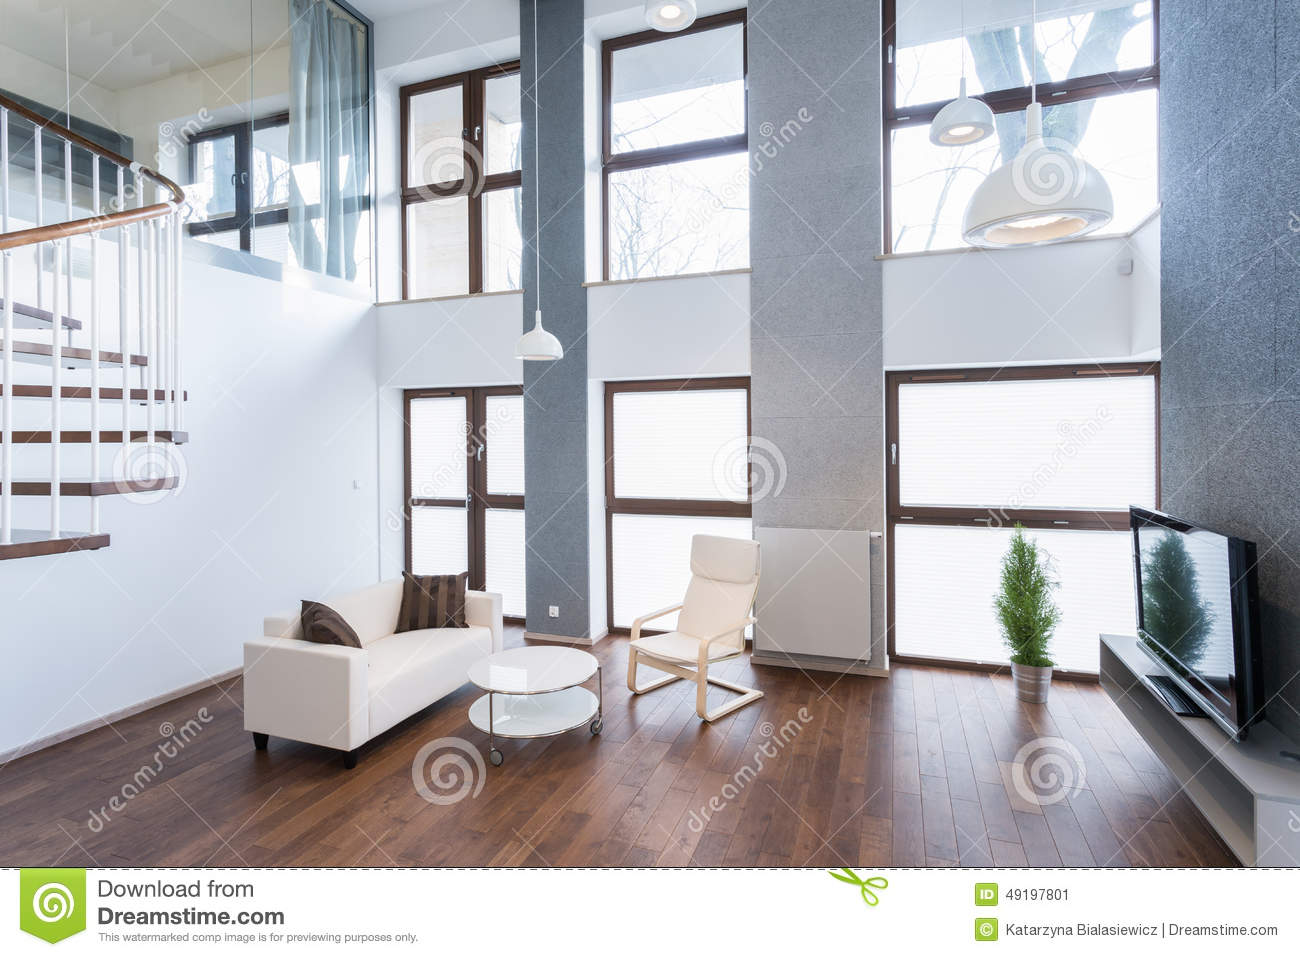 Relax space stock image. Image of modern, furniture, lounge - 49197801